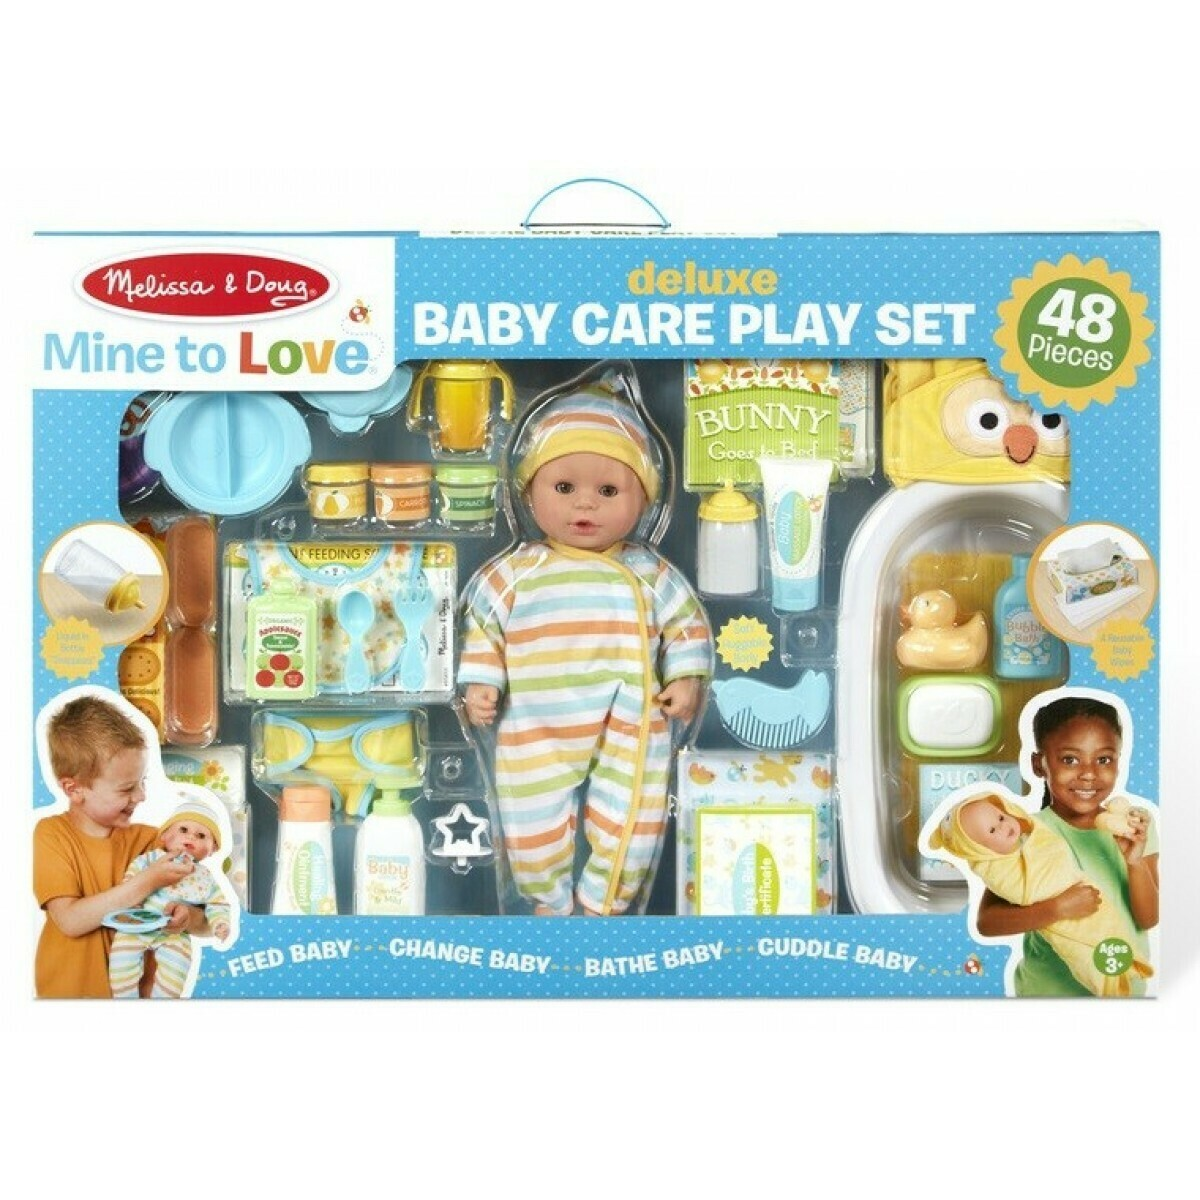 93835-ME Mine to love - Deluxe Baby Care Play Set